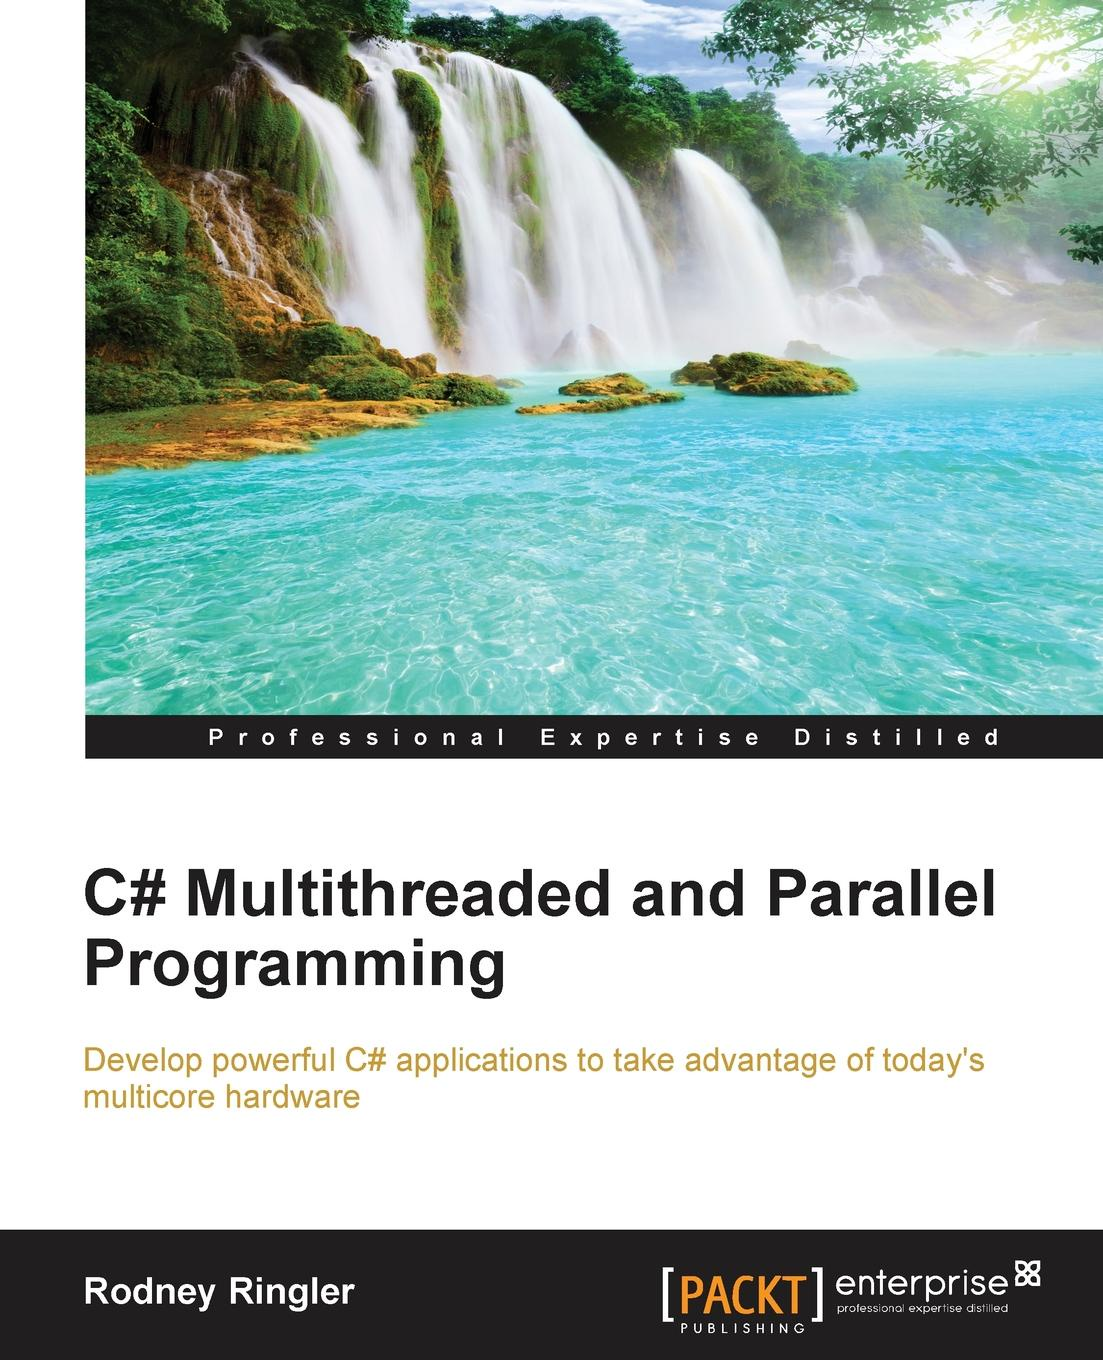 Rodney Ringler C# Multithreaded and Parallel Programming gastón hillar c professional parallel programming with c master parallel extensions with net 4